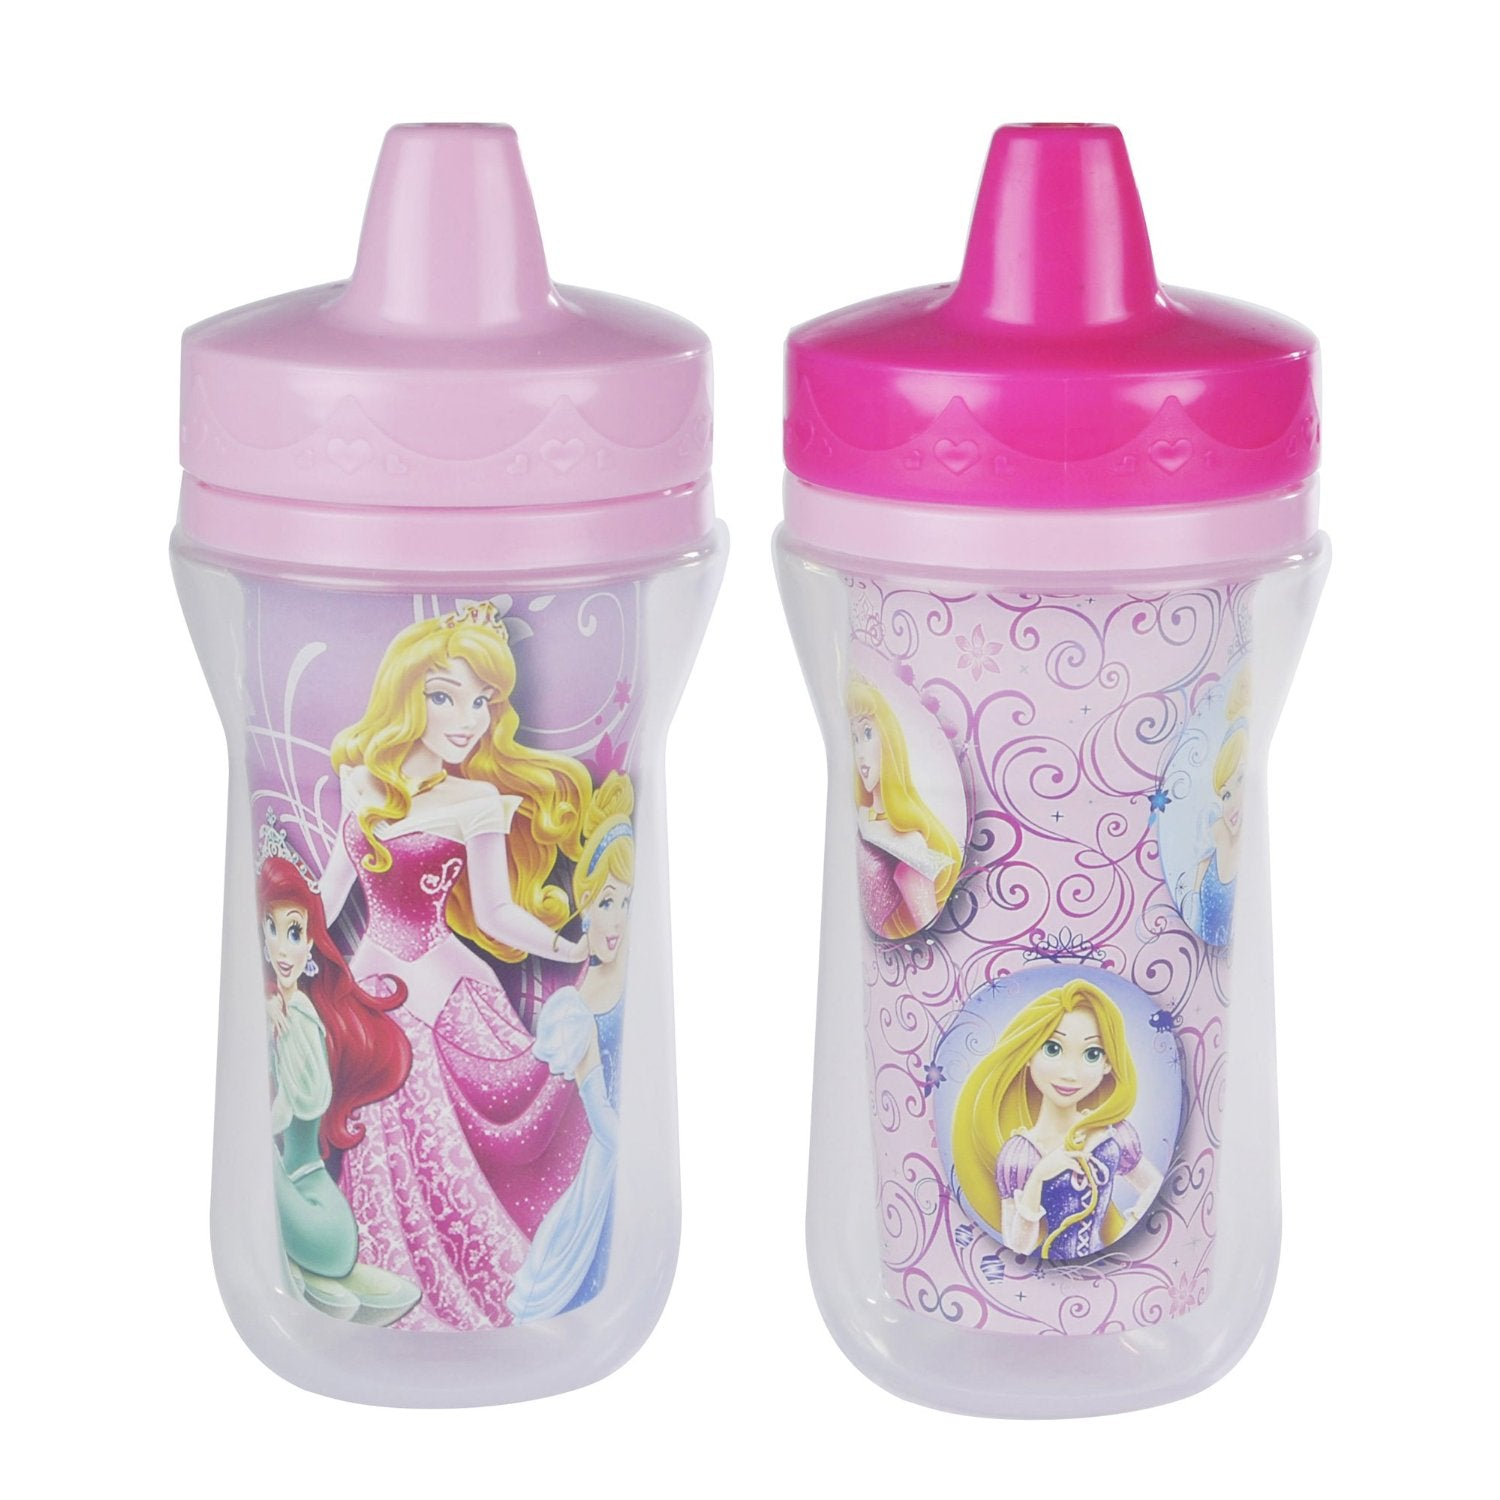 Disney Princess Dinnerware - Insulated Sippy Cups